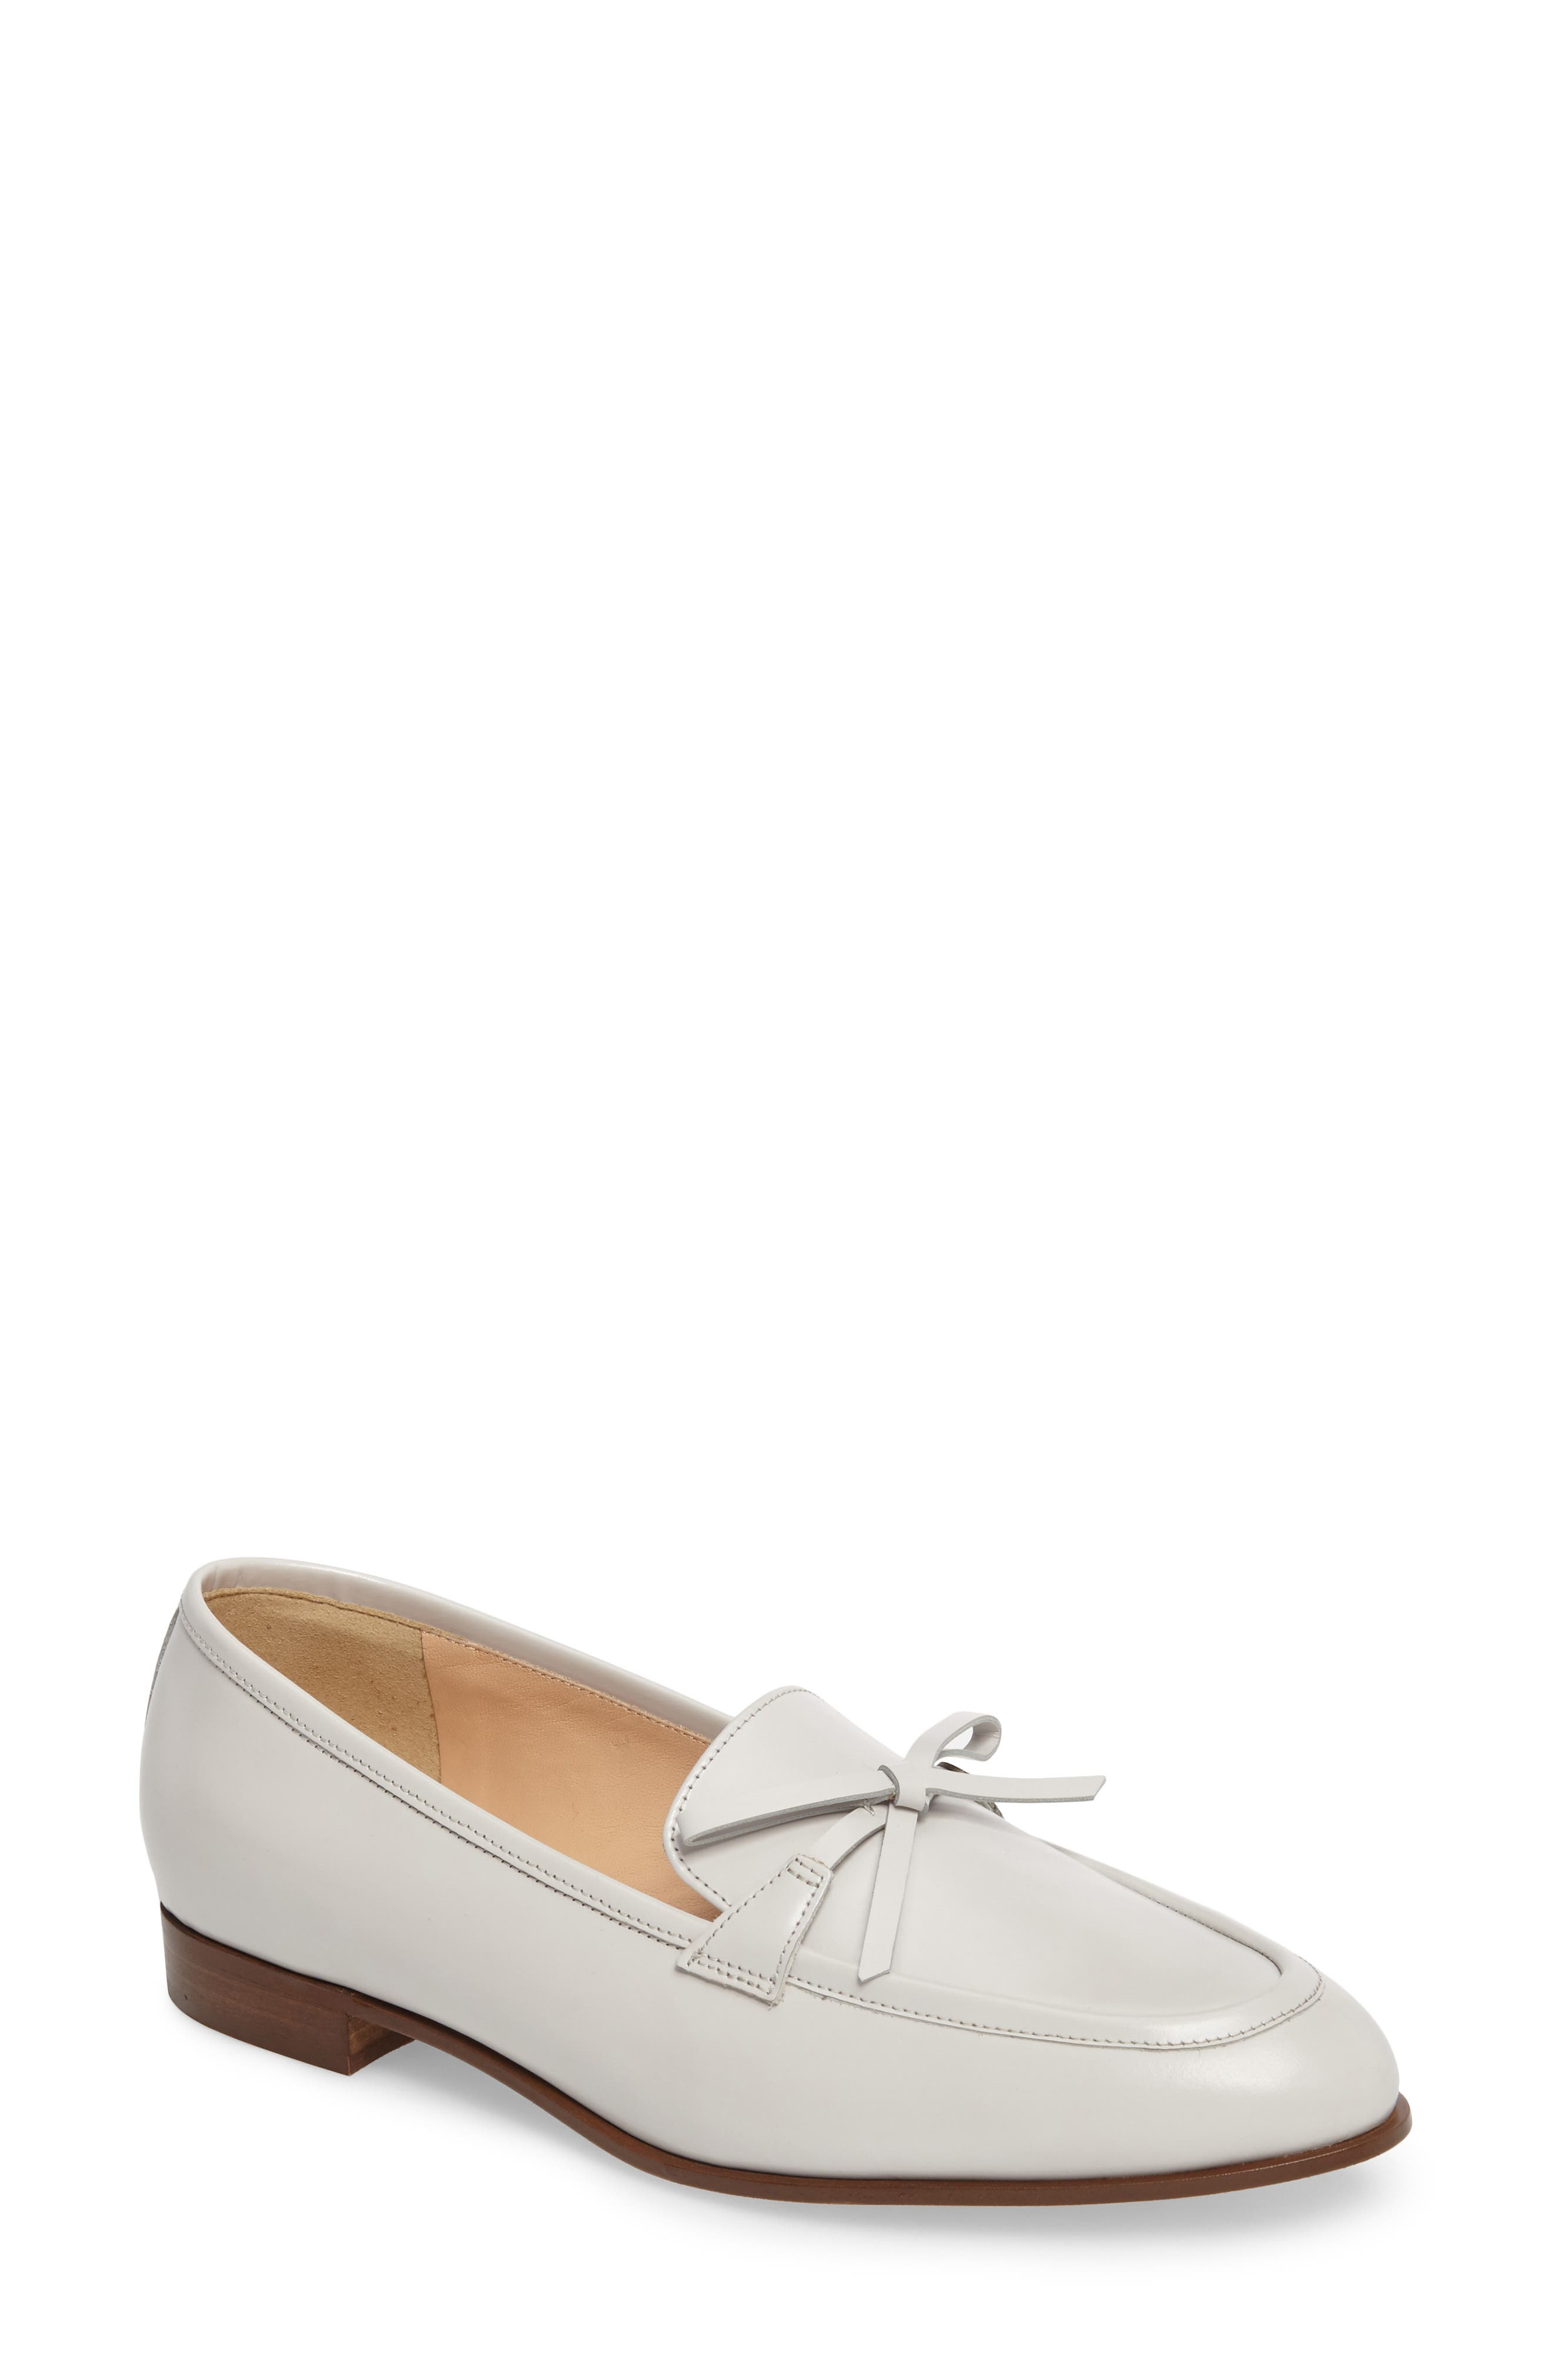 Bow Loafer,                         Main,                         color, Highland Mist Leather